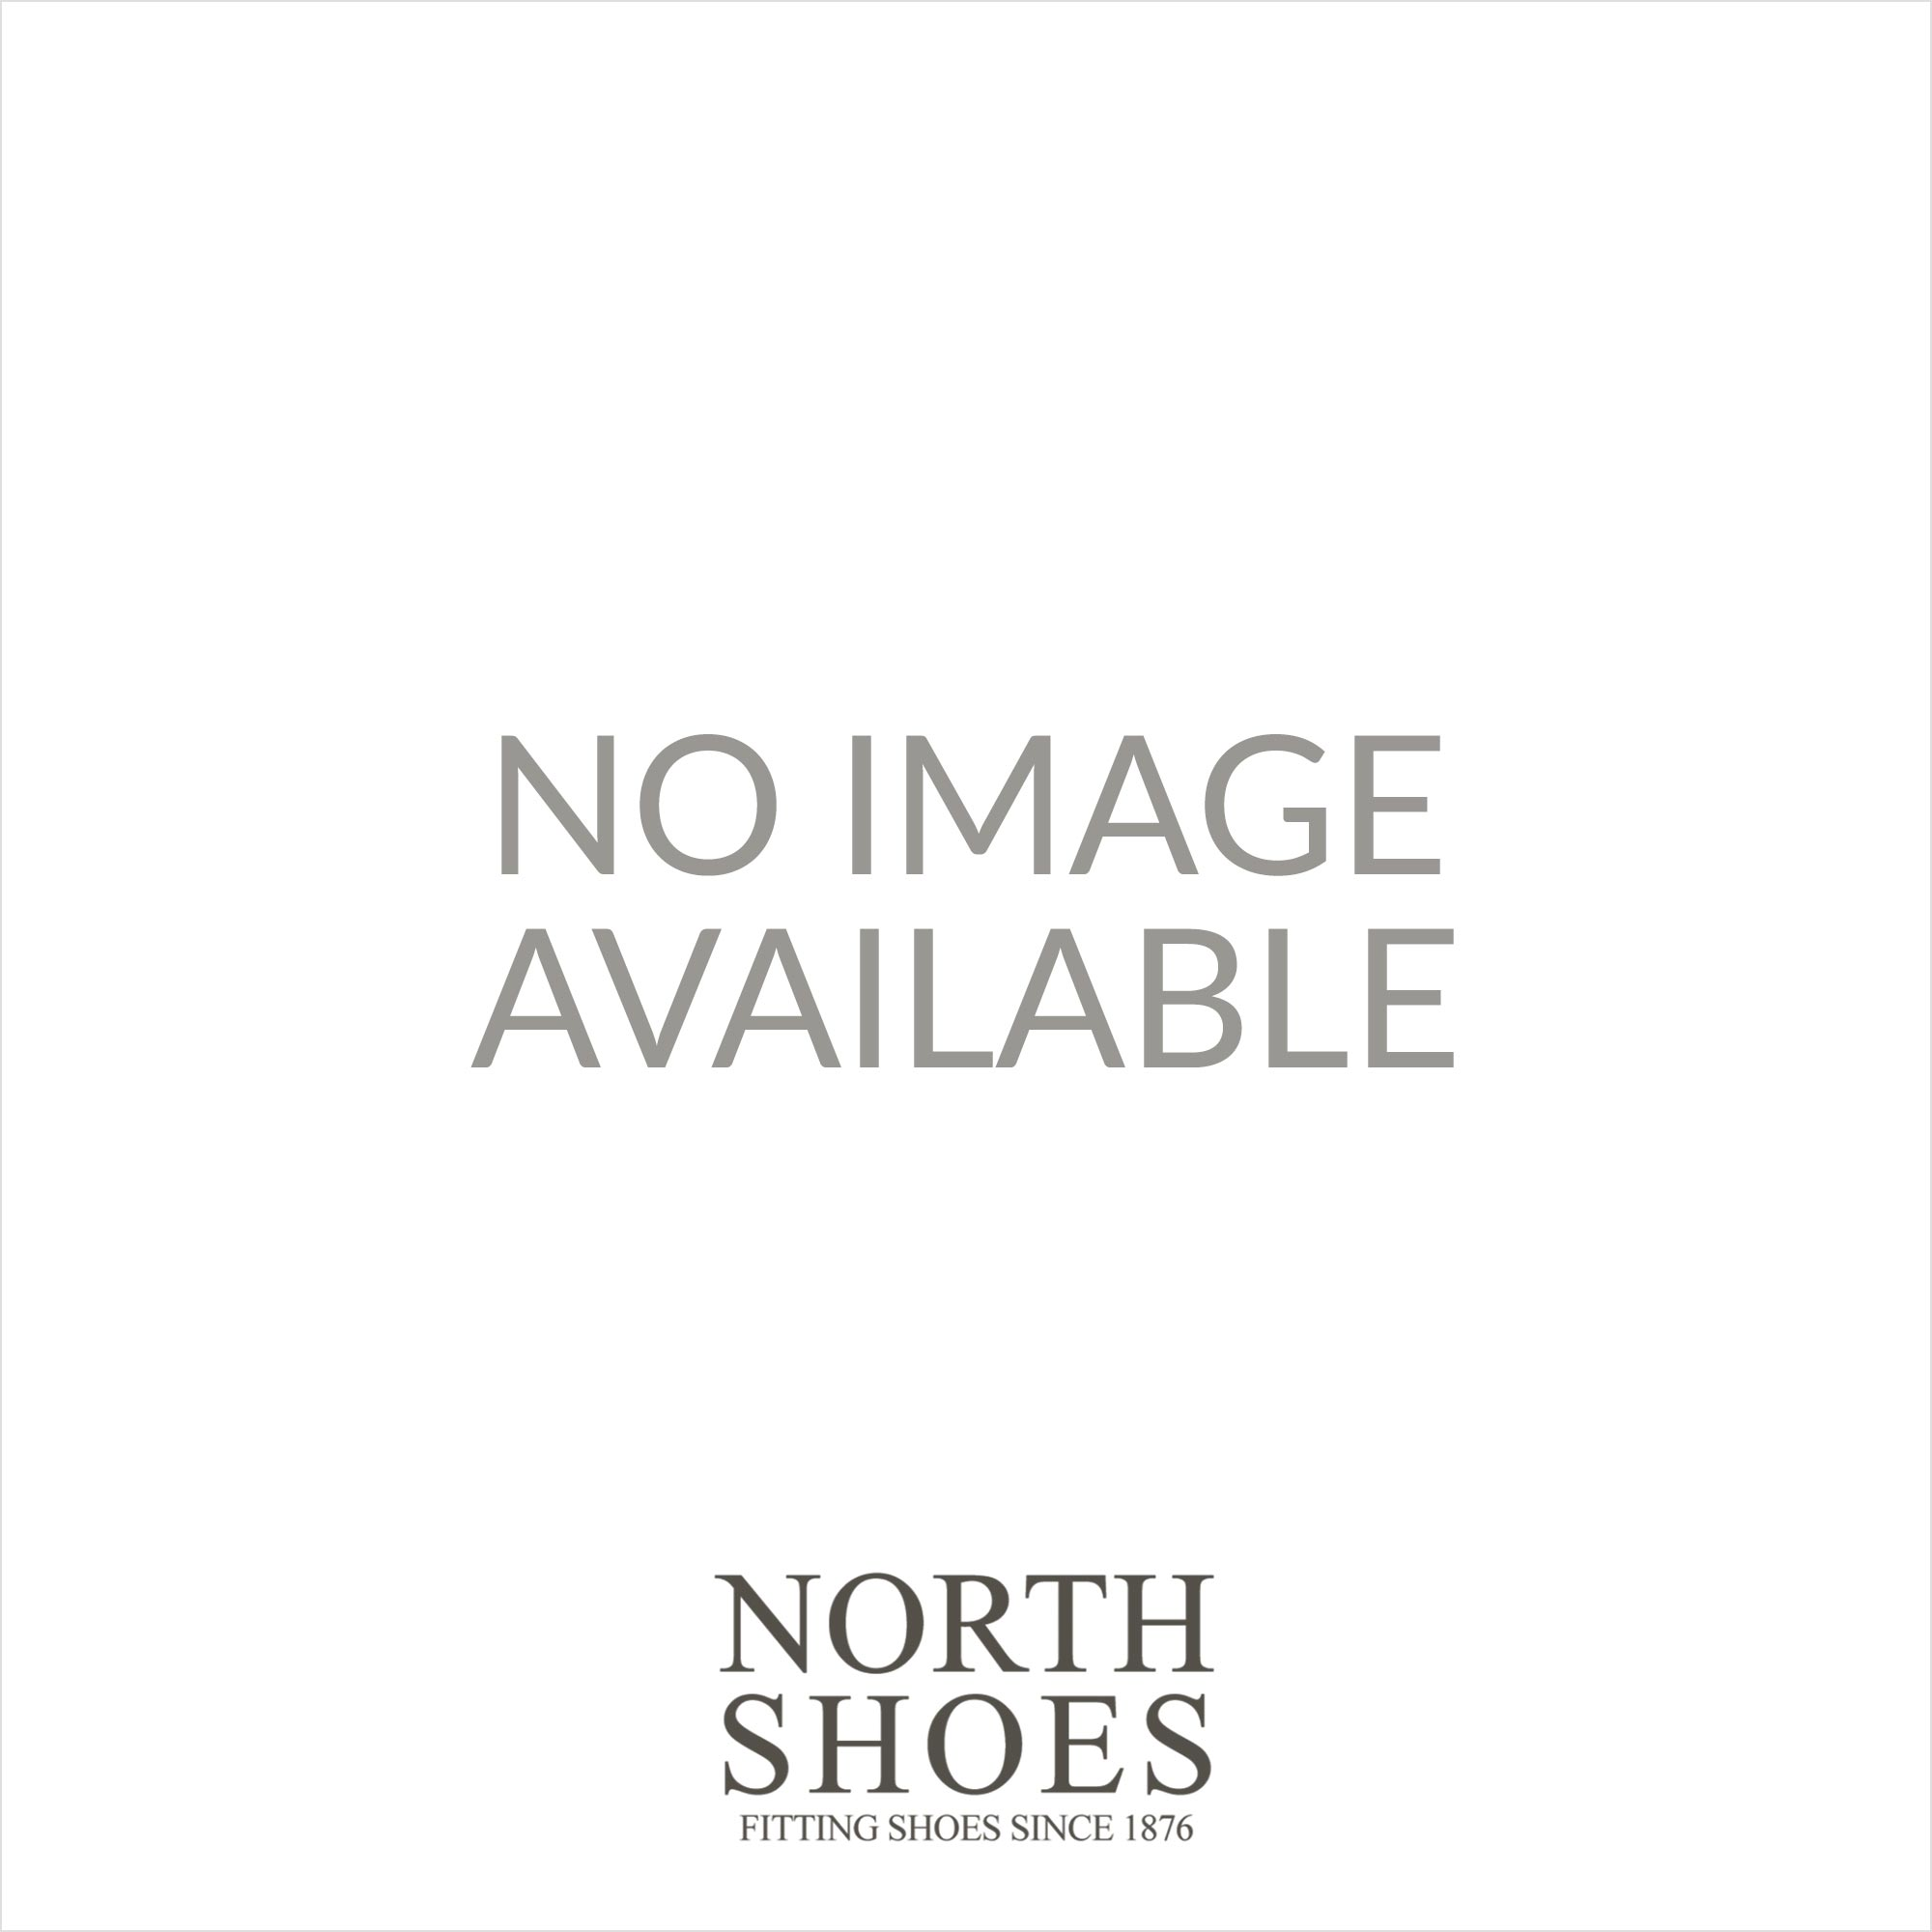 103221d145ef Fitflop Skinny Tan Leather Womens Toe Post Sandal - Fitflop from North  Shoes UK